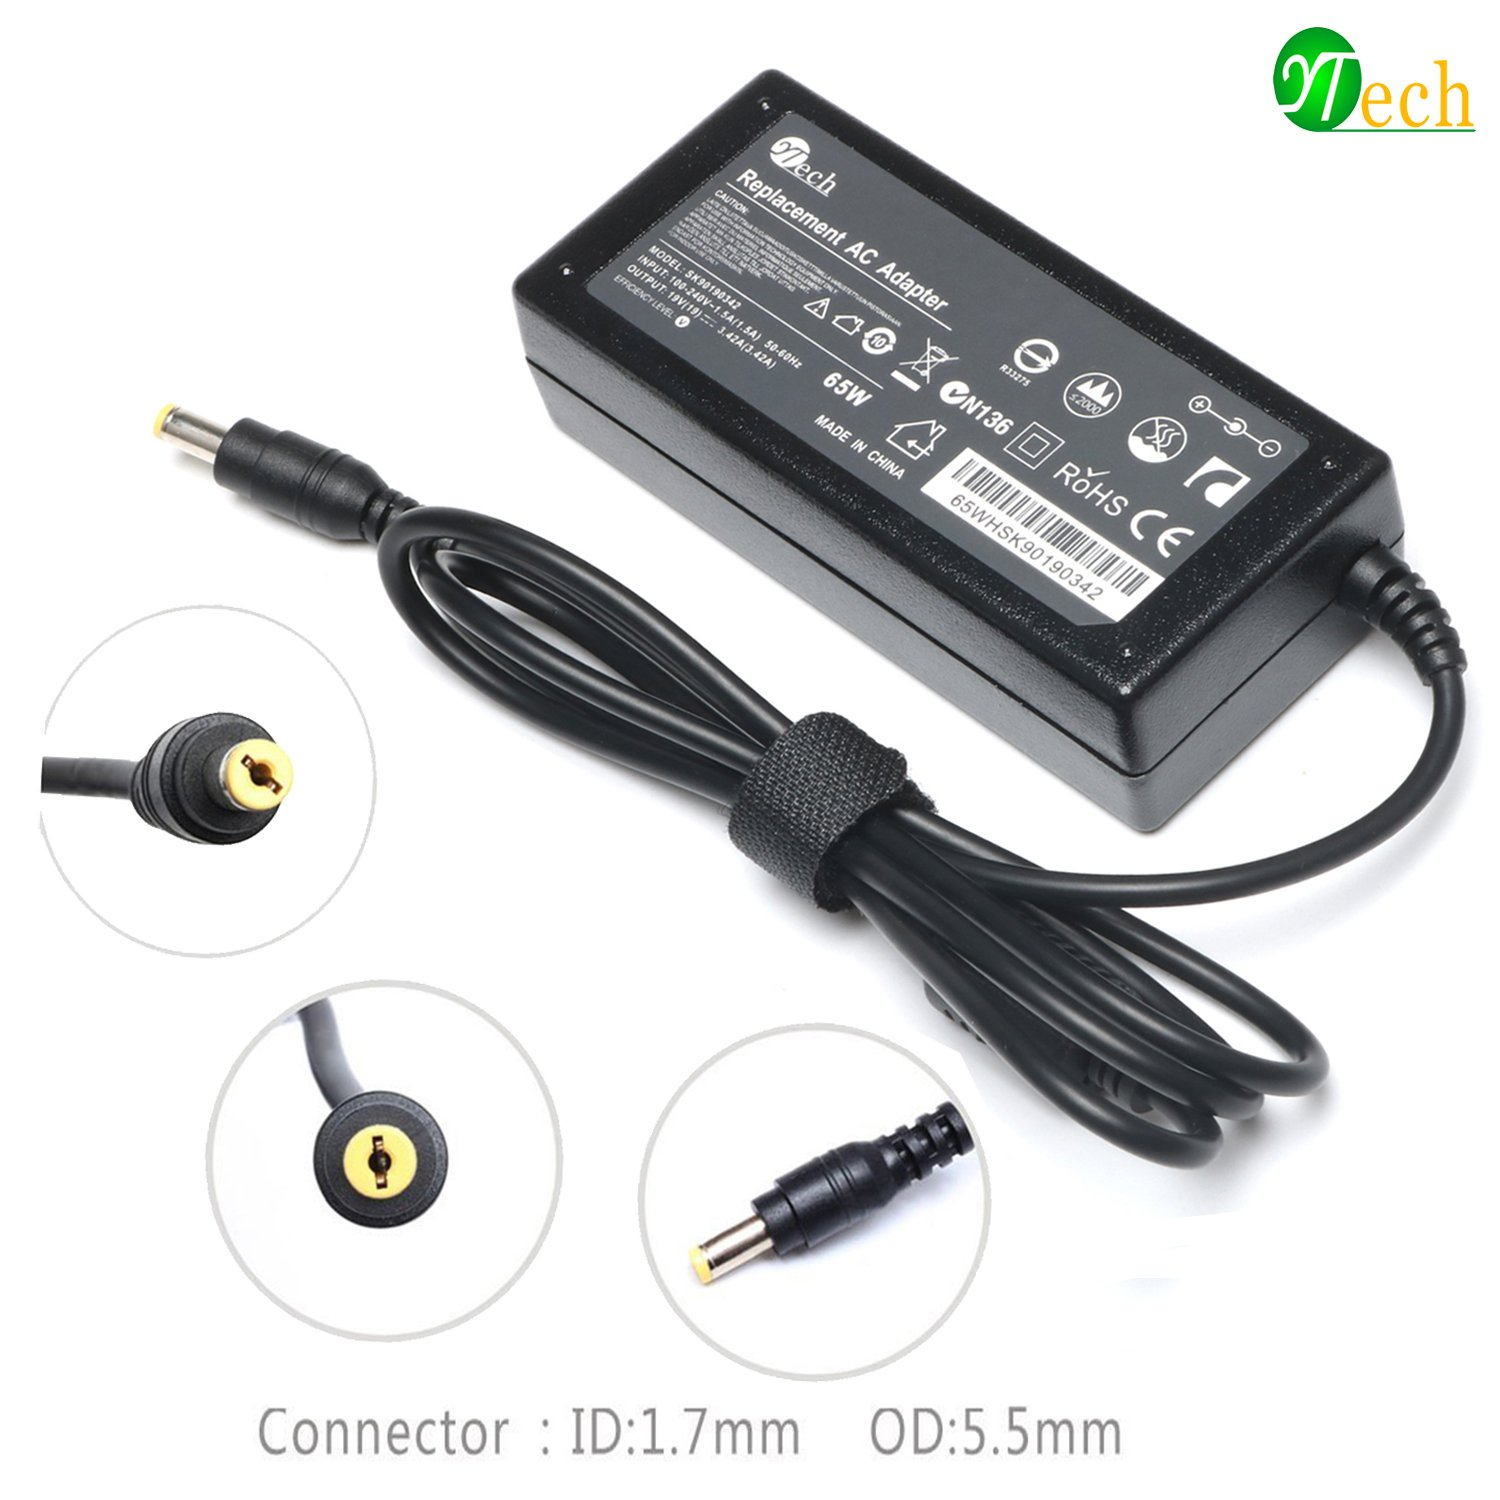 YTech 65W AC Power Adapter/Battery Charger for Acer Aspire 5532 5349 5750 5742 5250 5253 5733 5534 5336 5552 5560 7560 SB416 5250 AS7750 6423 V5 V7 V3 R3 R7 S3 E1 M5 Series Laptop Power Supply Cord